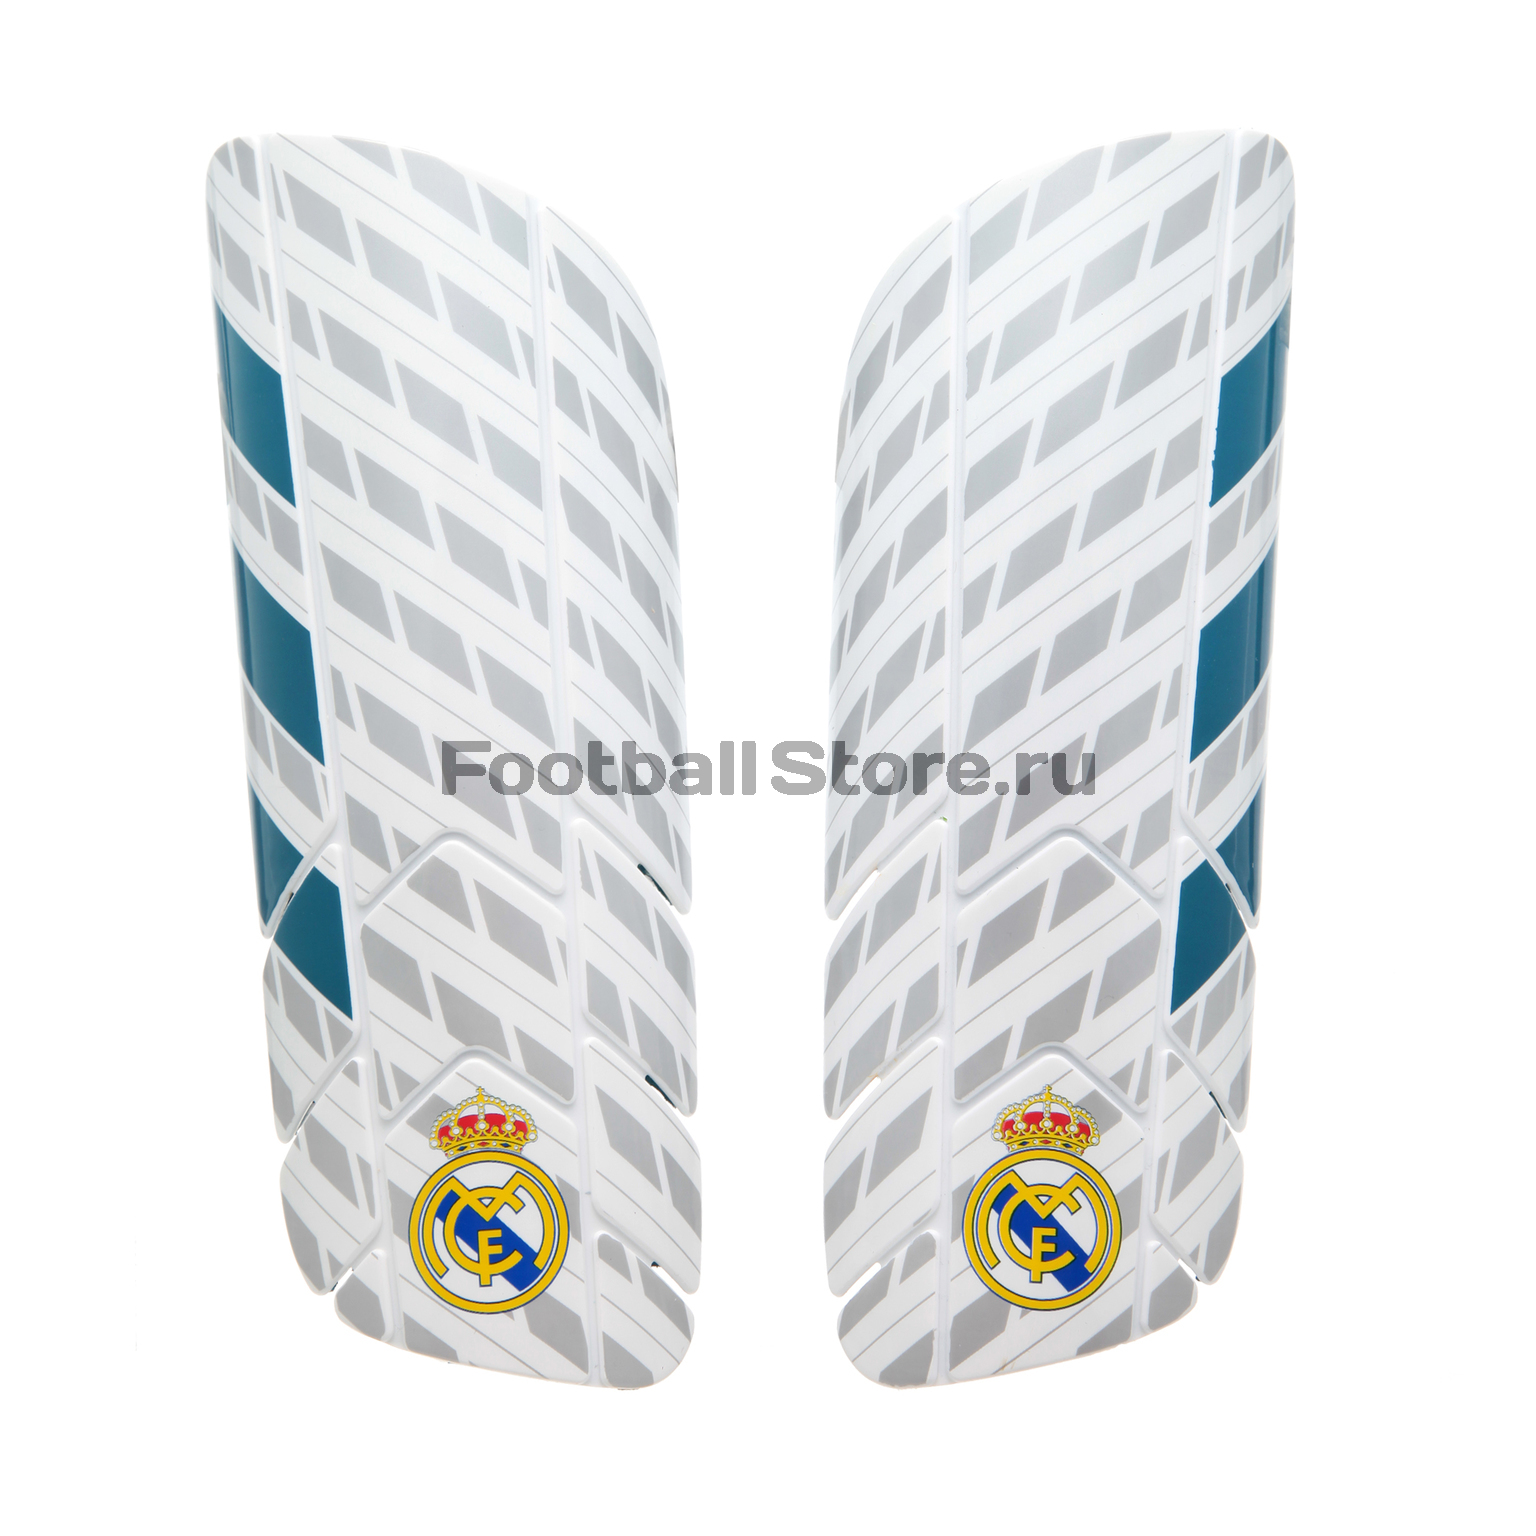 Защита ног Adidas Щитки Adidas Ace Real Madrid BS4195 real madrid adidas свитер adidas real madrid euhybrid top bq7851